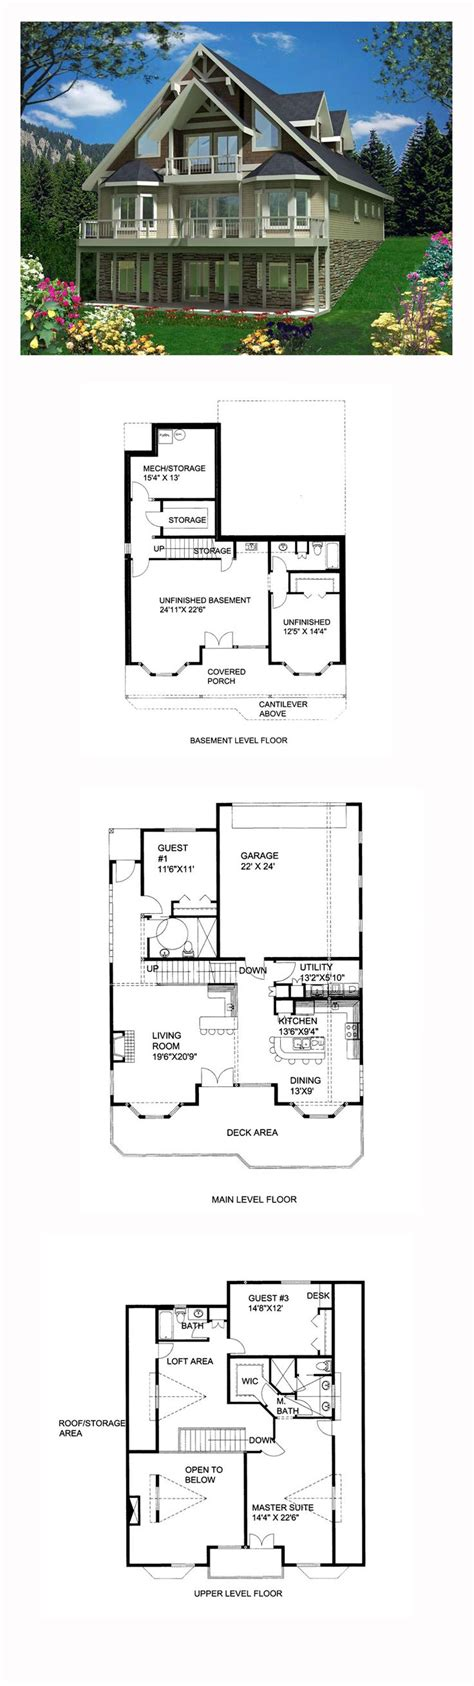 steep slope house plans 29 best images about steep slope house plans on